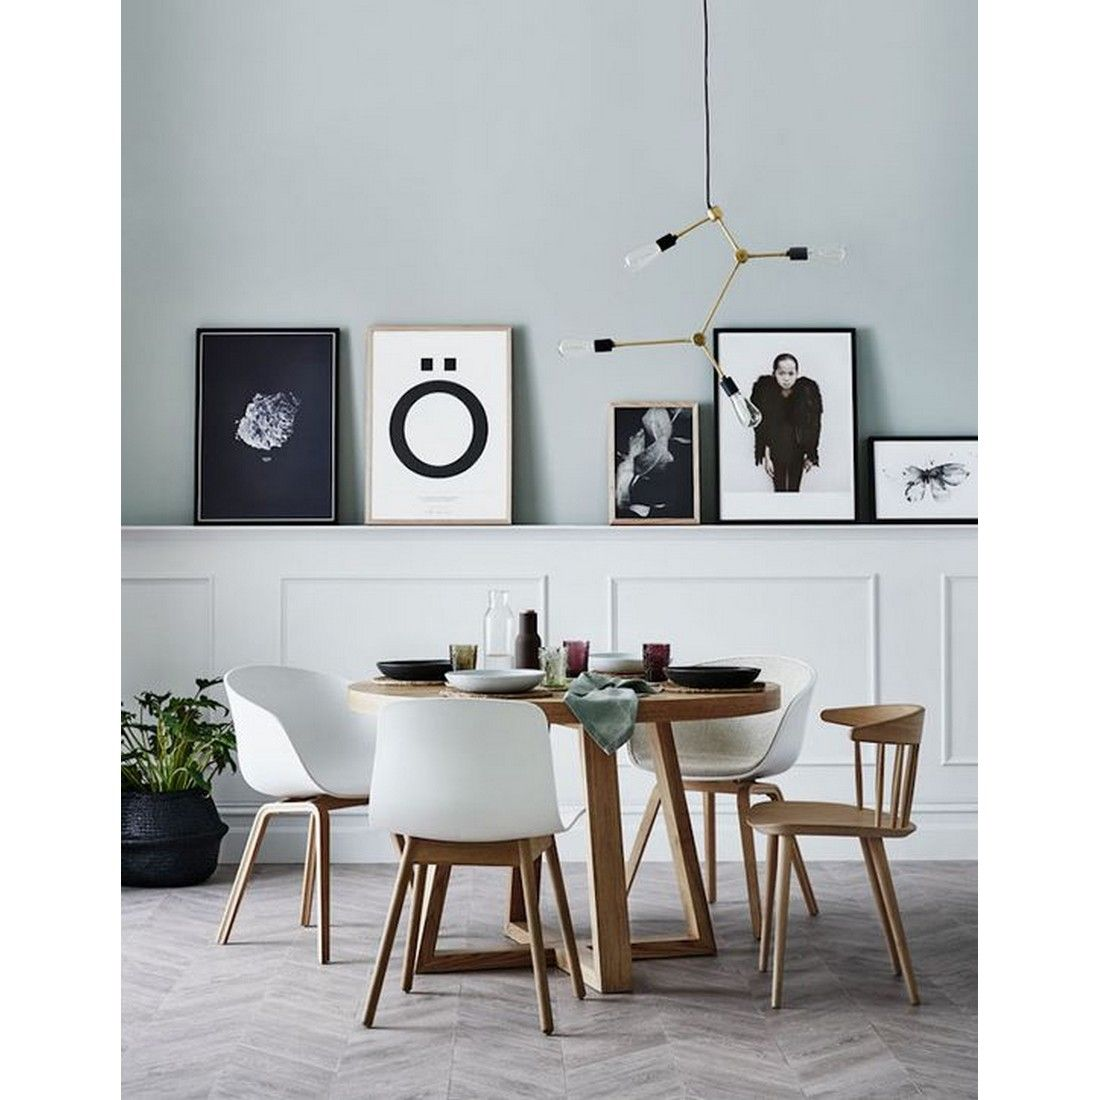 Scandinavian dining room with wooden chairs, yay or nay? # ...